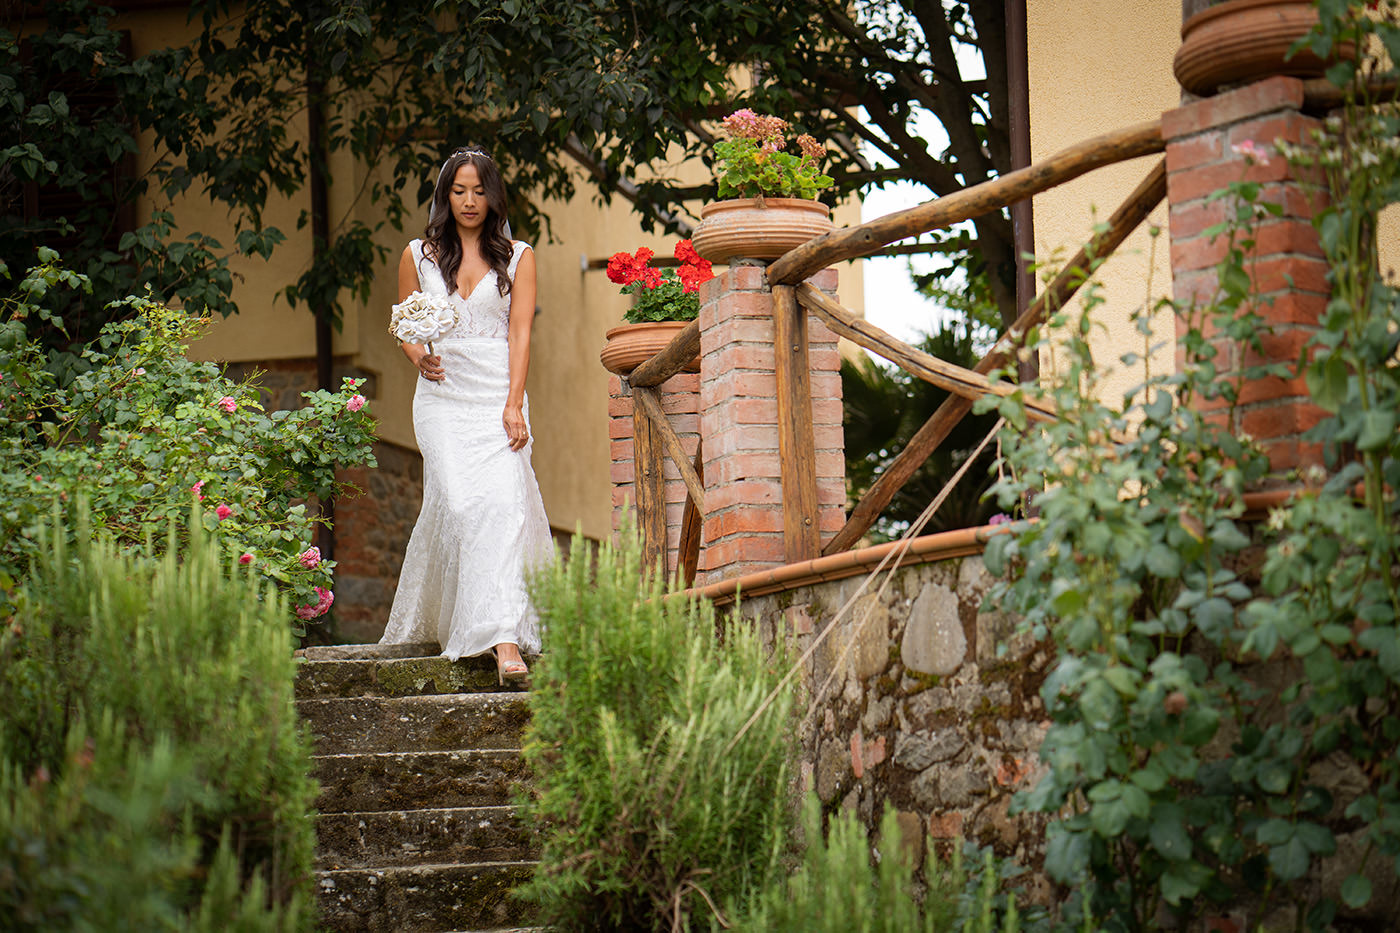 Vows Renewal Photographer in Tuscany - Duccio Argentini